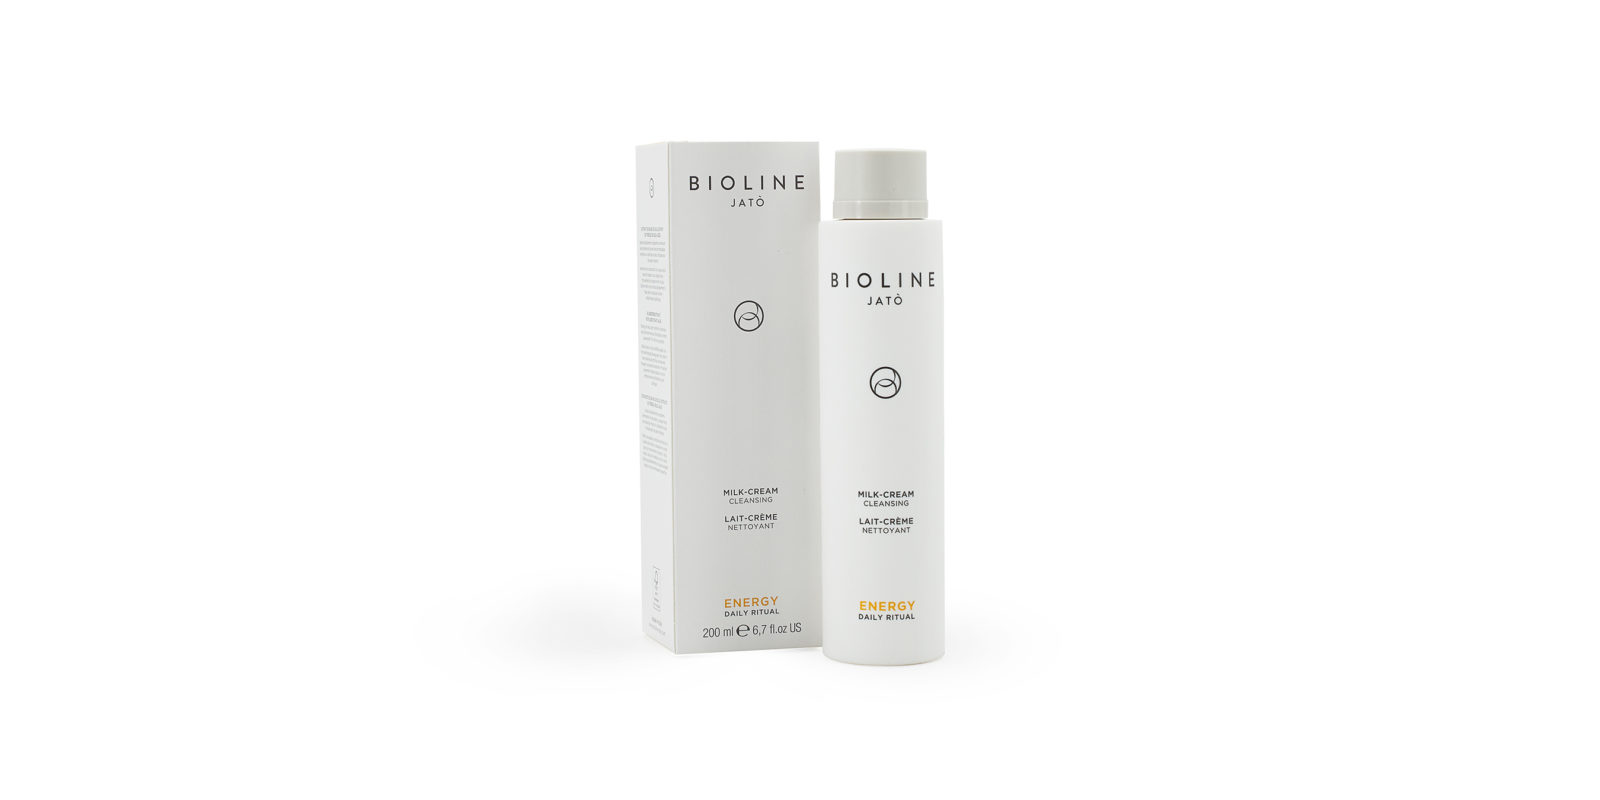 Bioline Jatò Energy Daily Ritual Milk-Cream Cleansing